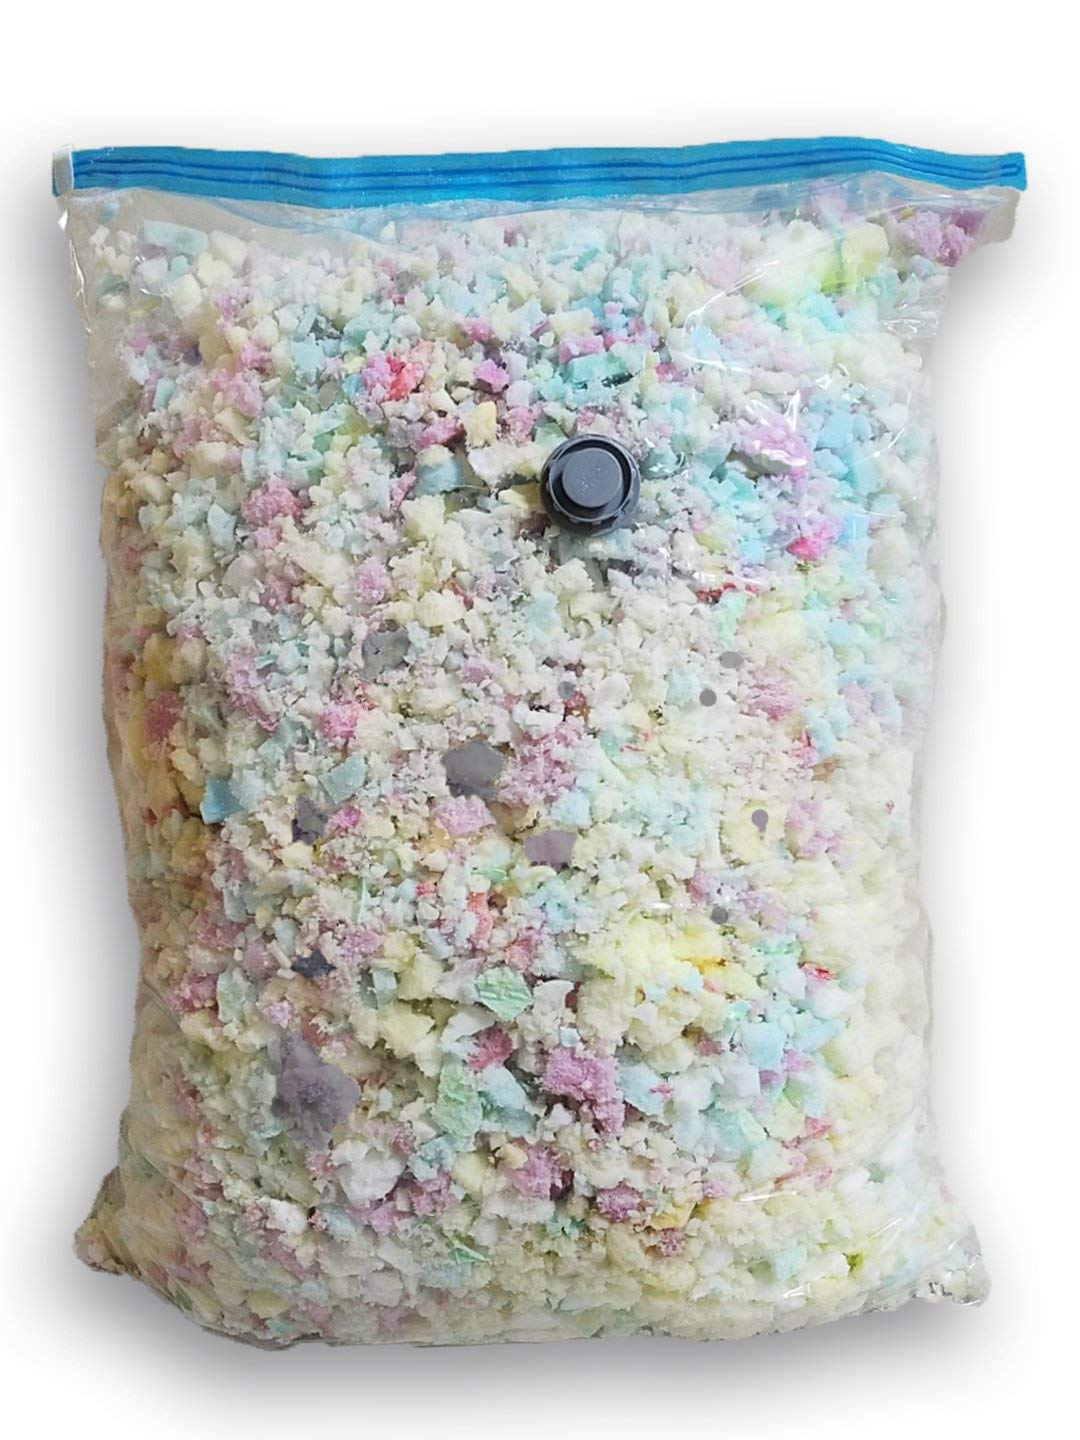 Fine Shredded Polyfoam – Filler for Stuffing, Upholstery, Pillows, Crafts, Bean Bags, Chairs, Sofa, Pet Dog Beds, and More – Made in USA 10 Pound